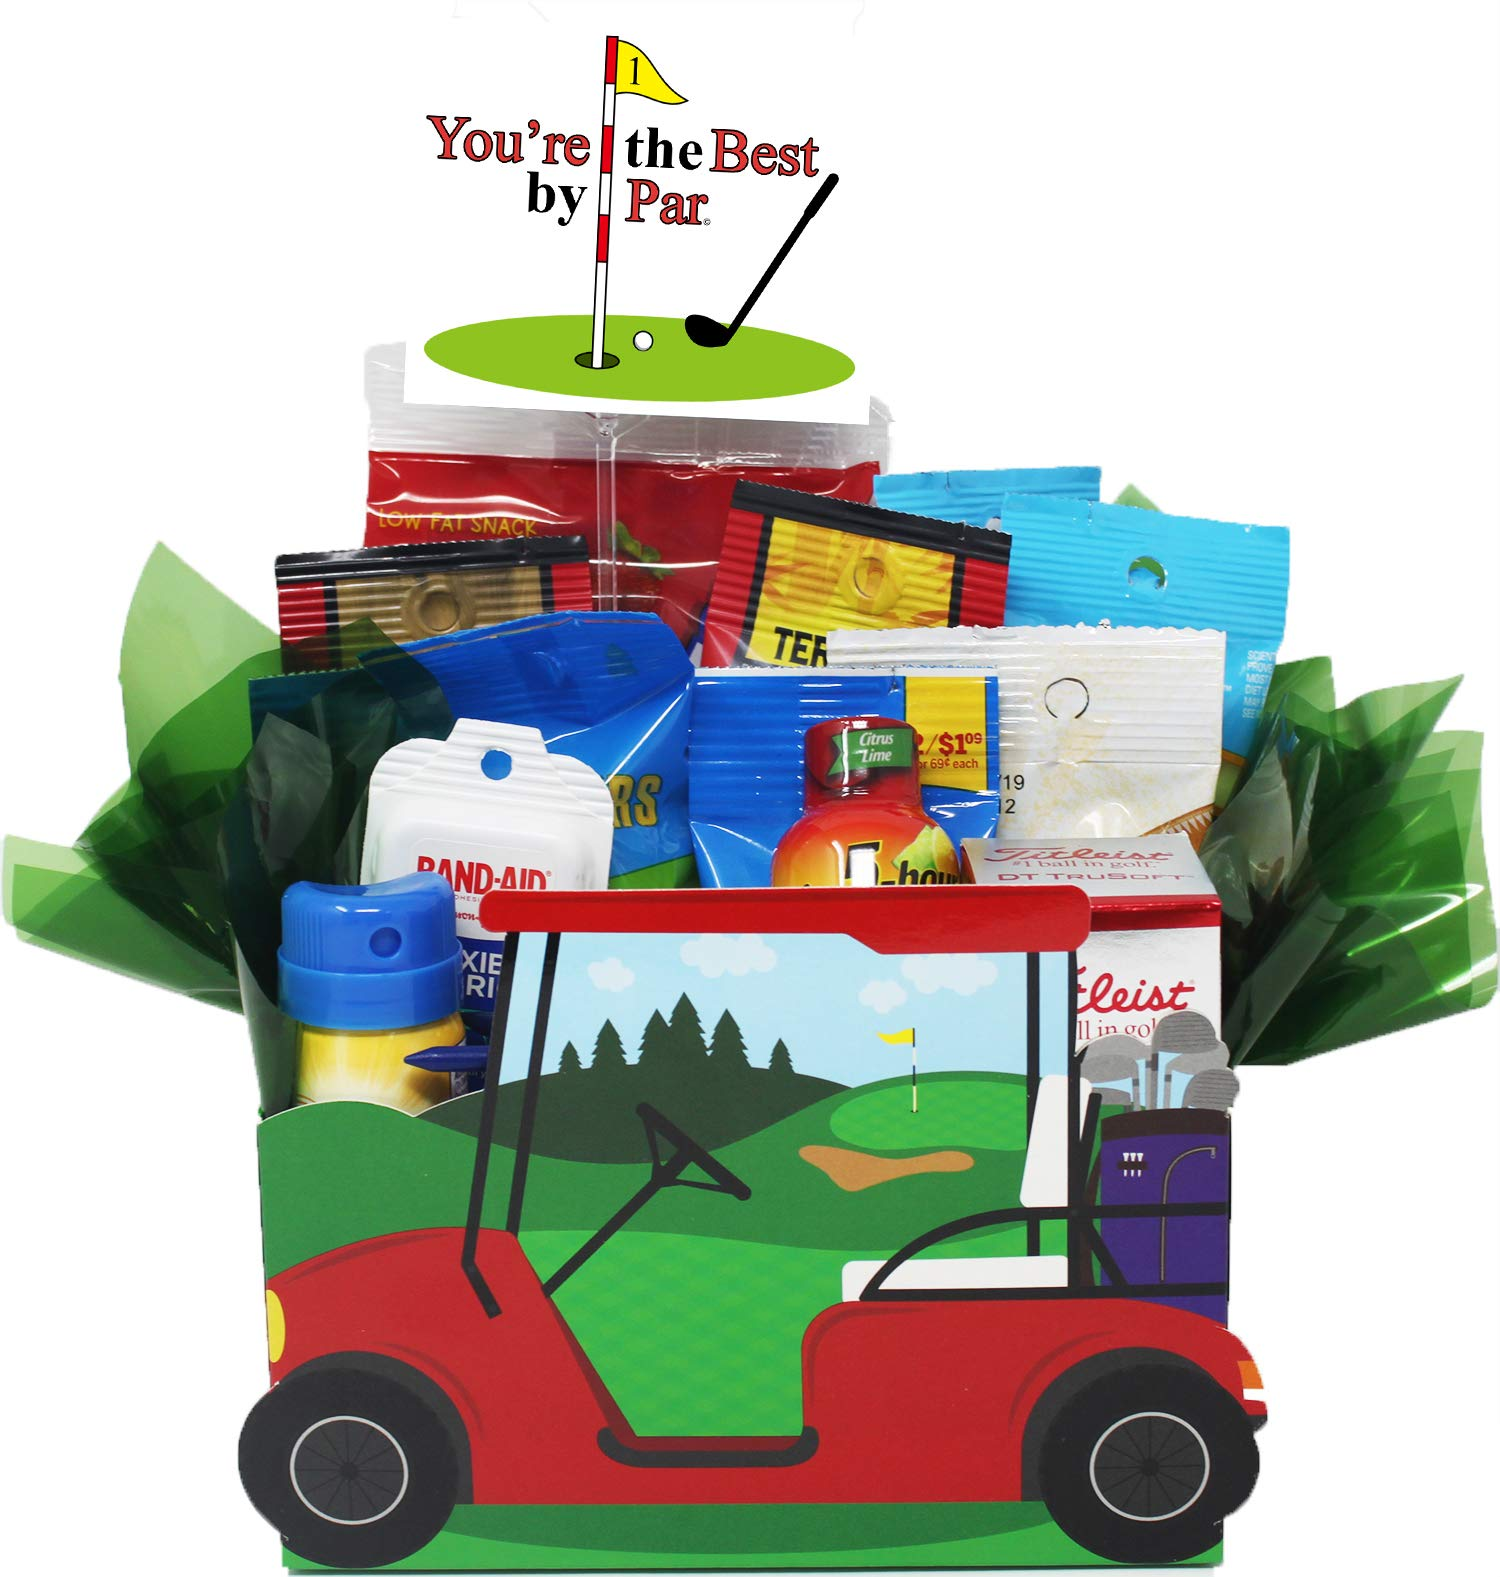 Unique Gift Idea for the Golfer Who Has Everything! ''You're the Best by Par''Golf Cart Gift Basket loaded with Snacks,Titleist Golf Balls, Wooden Tee's, Supplies and Personalized Gift Card.